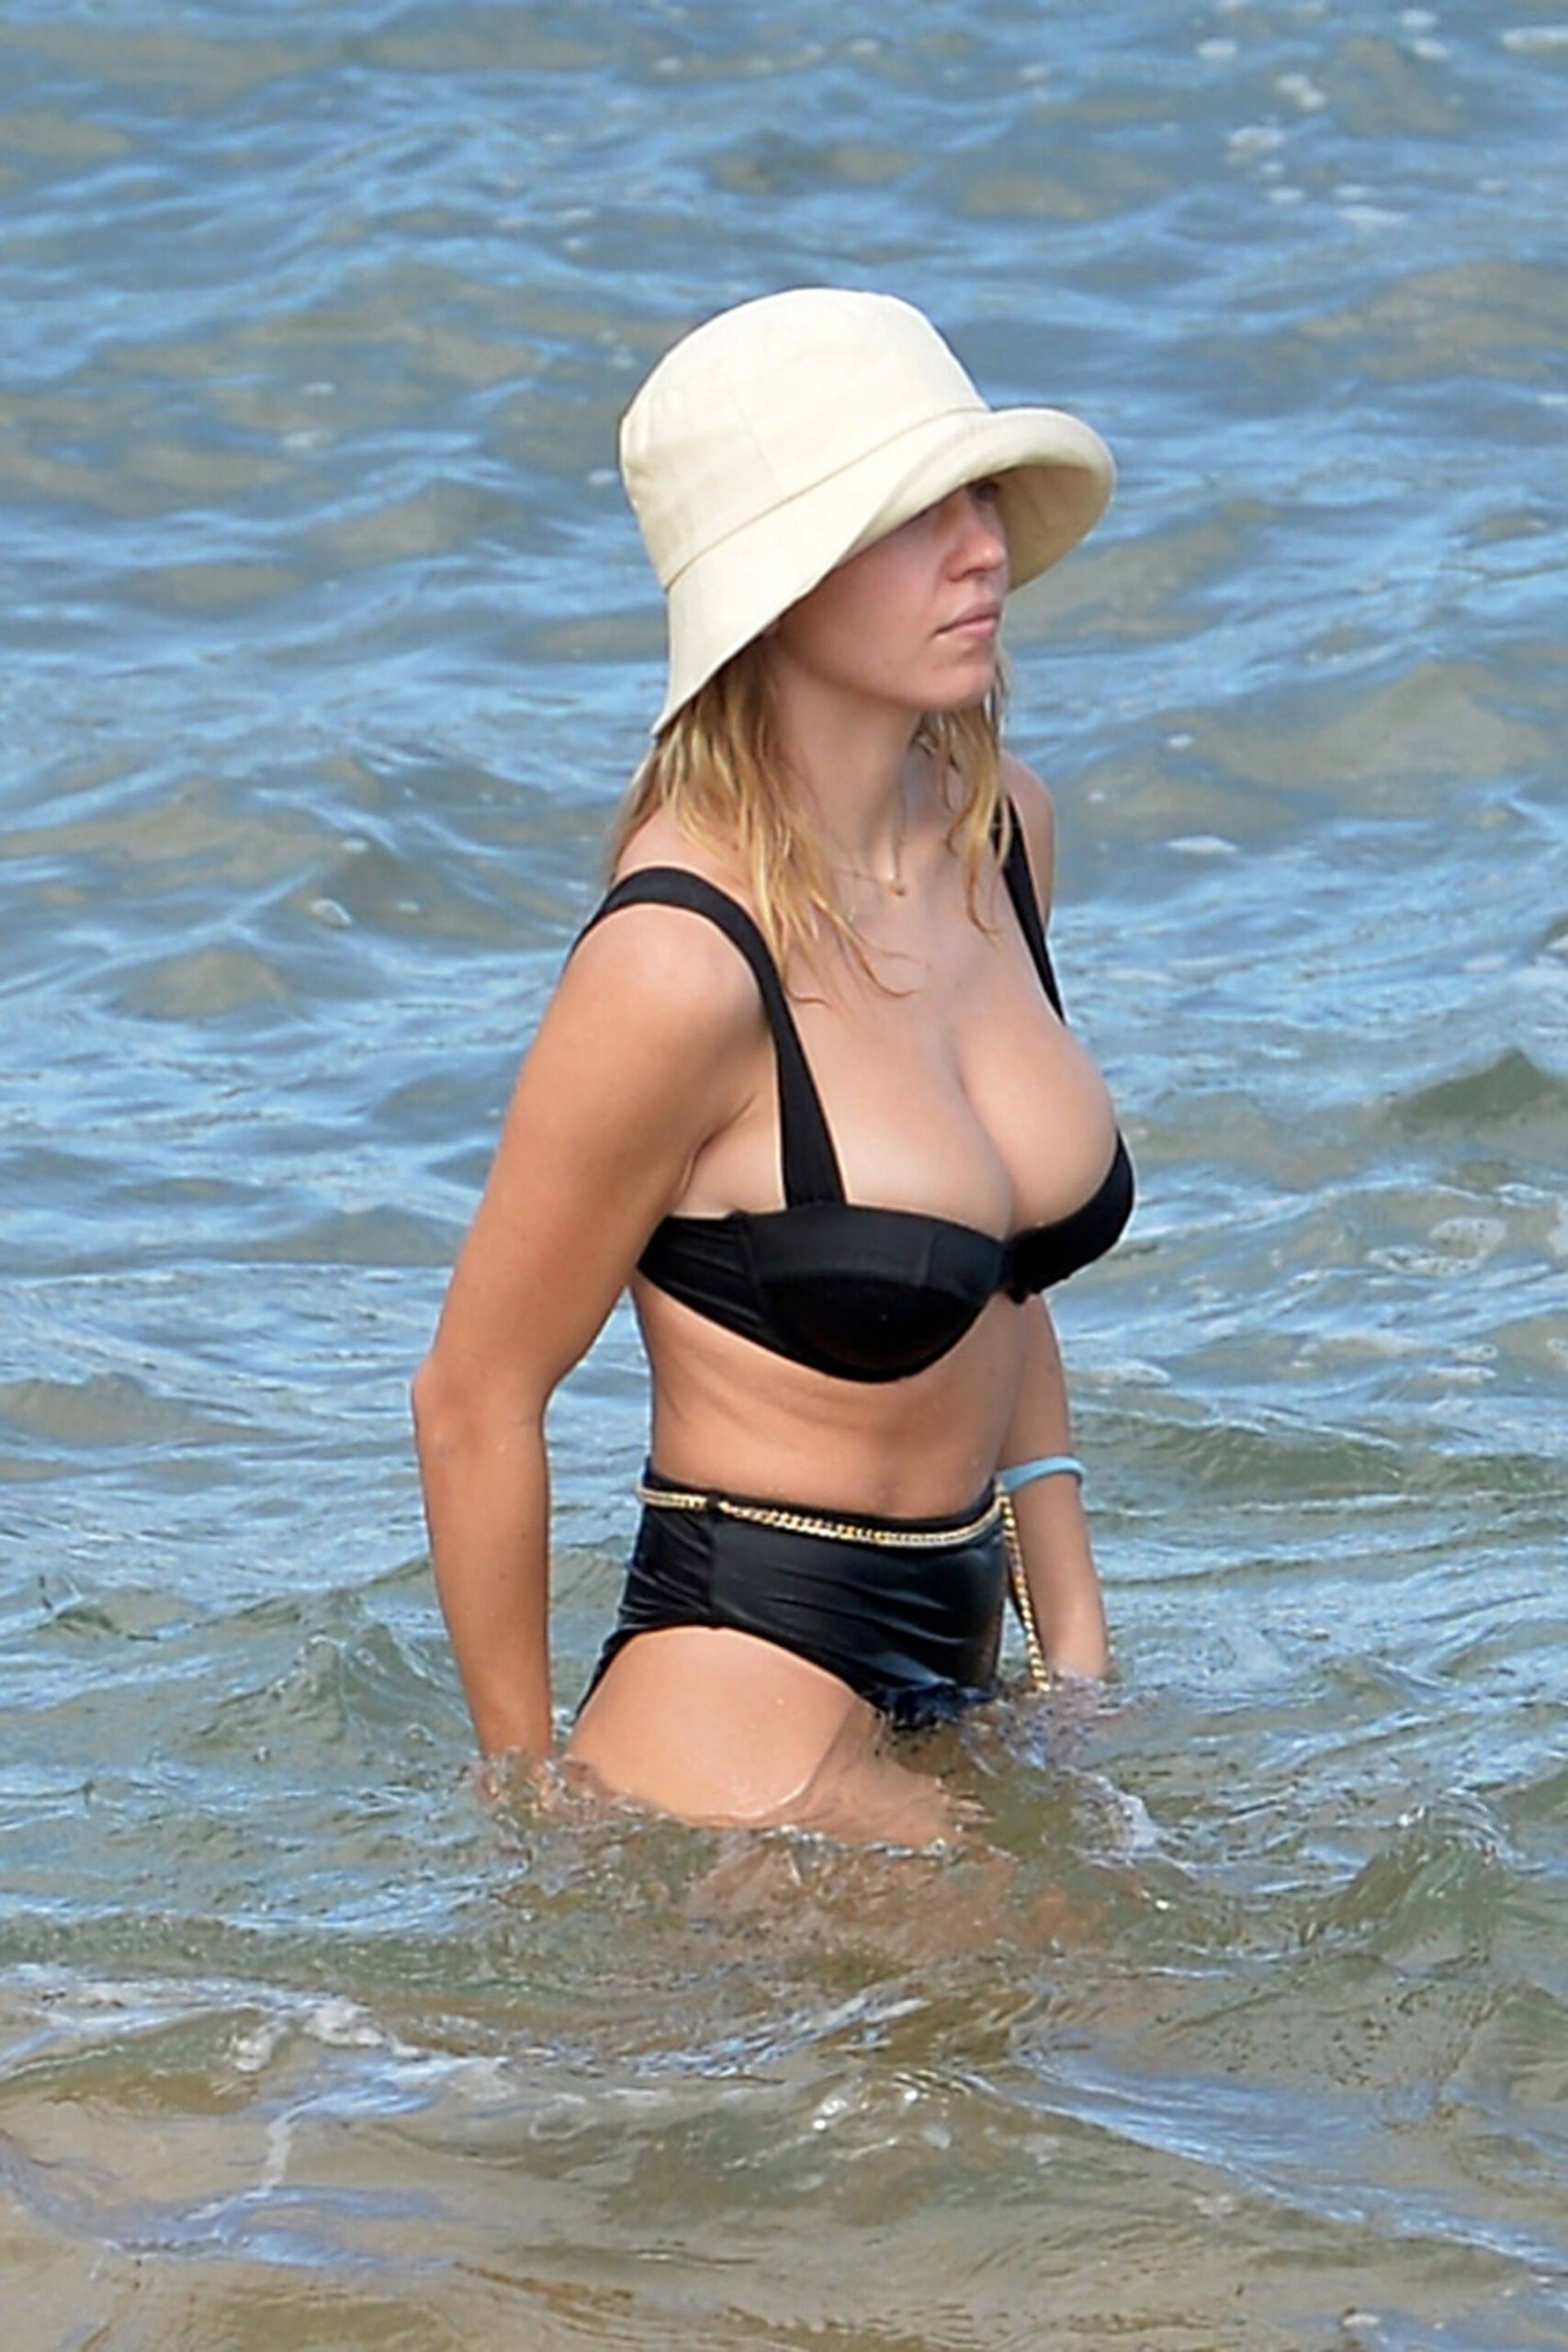 Sydney Sweeney Huge Boobs In Bikini